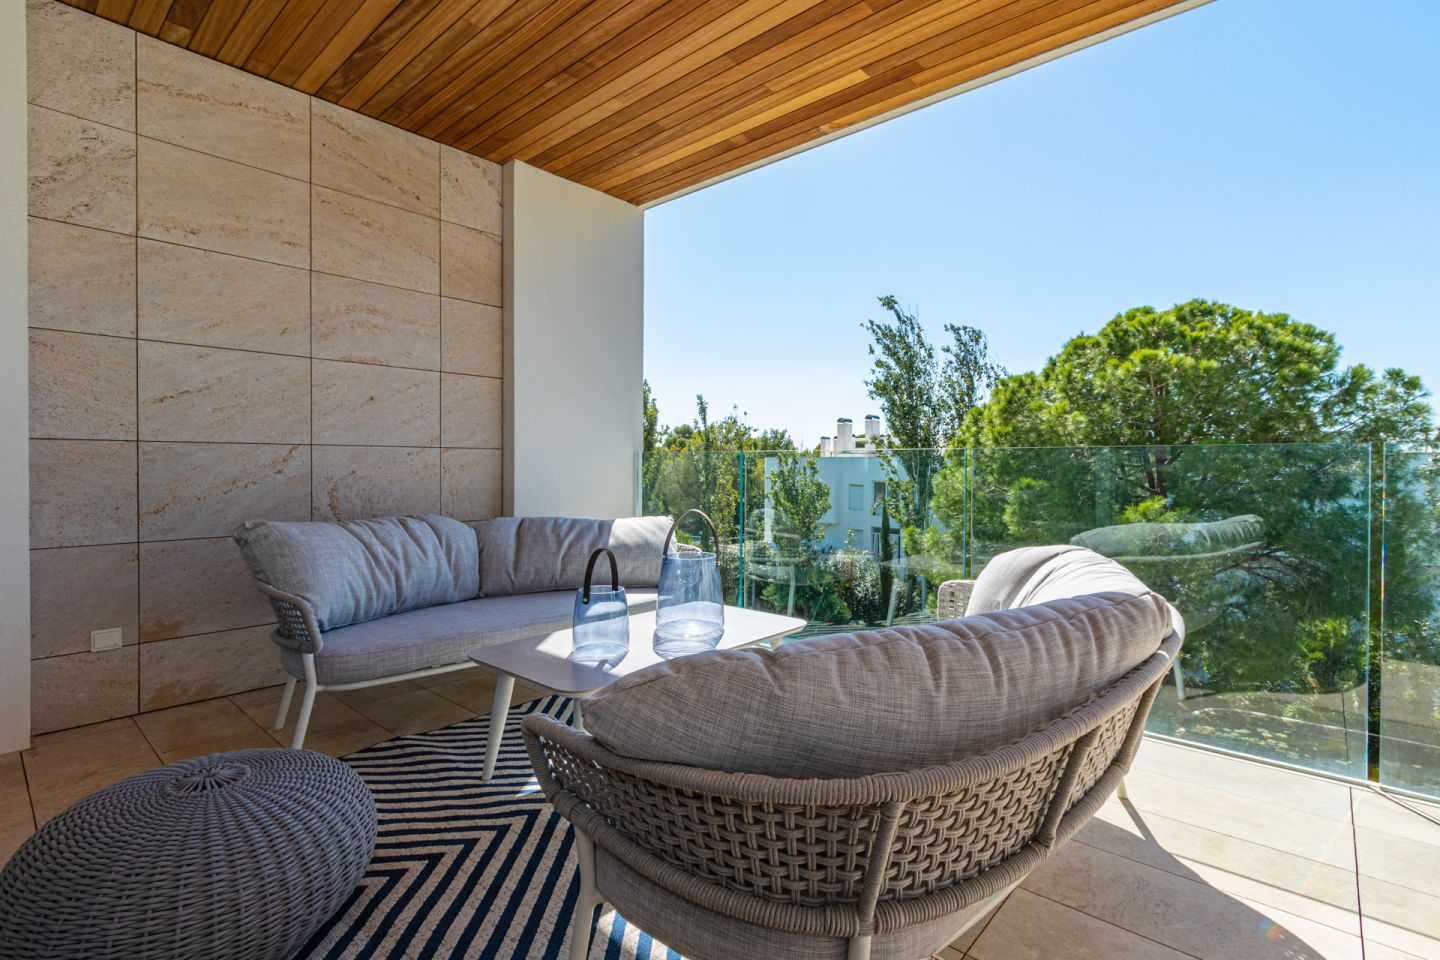 3 Bed Penthouse for sale in PUERTO POLLENSA 16